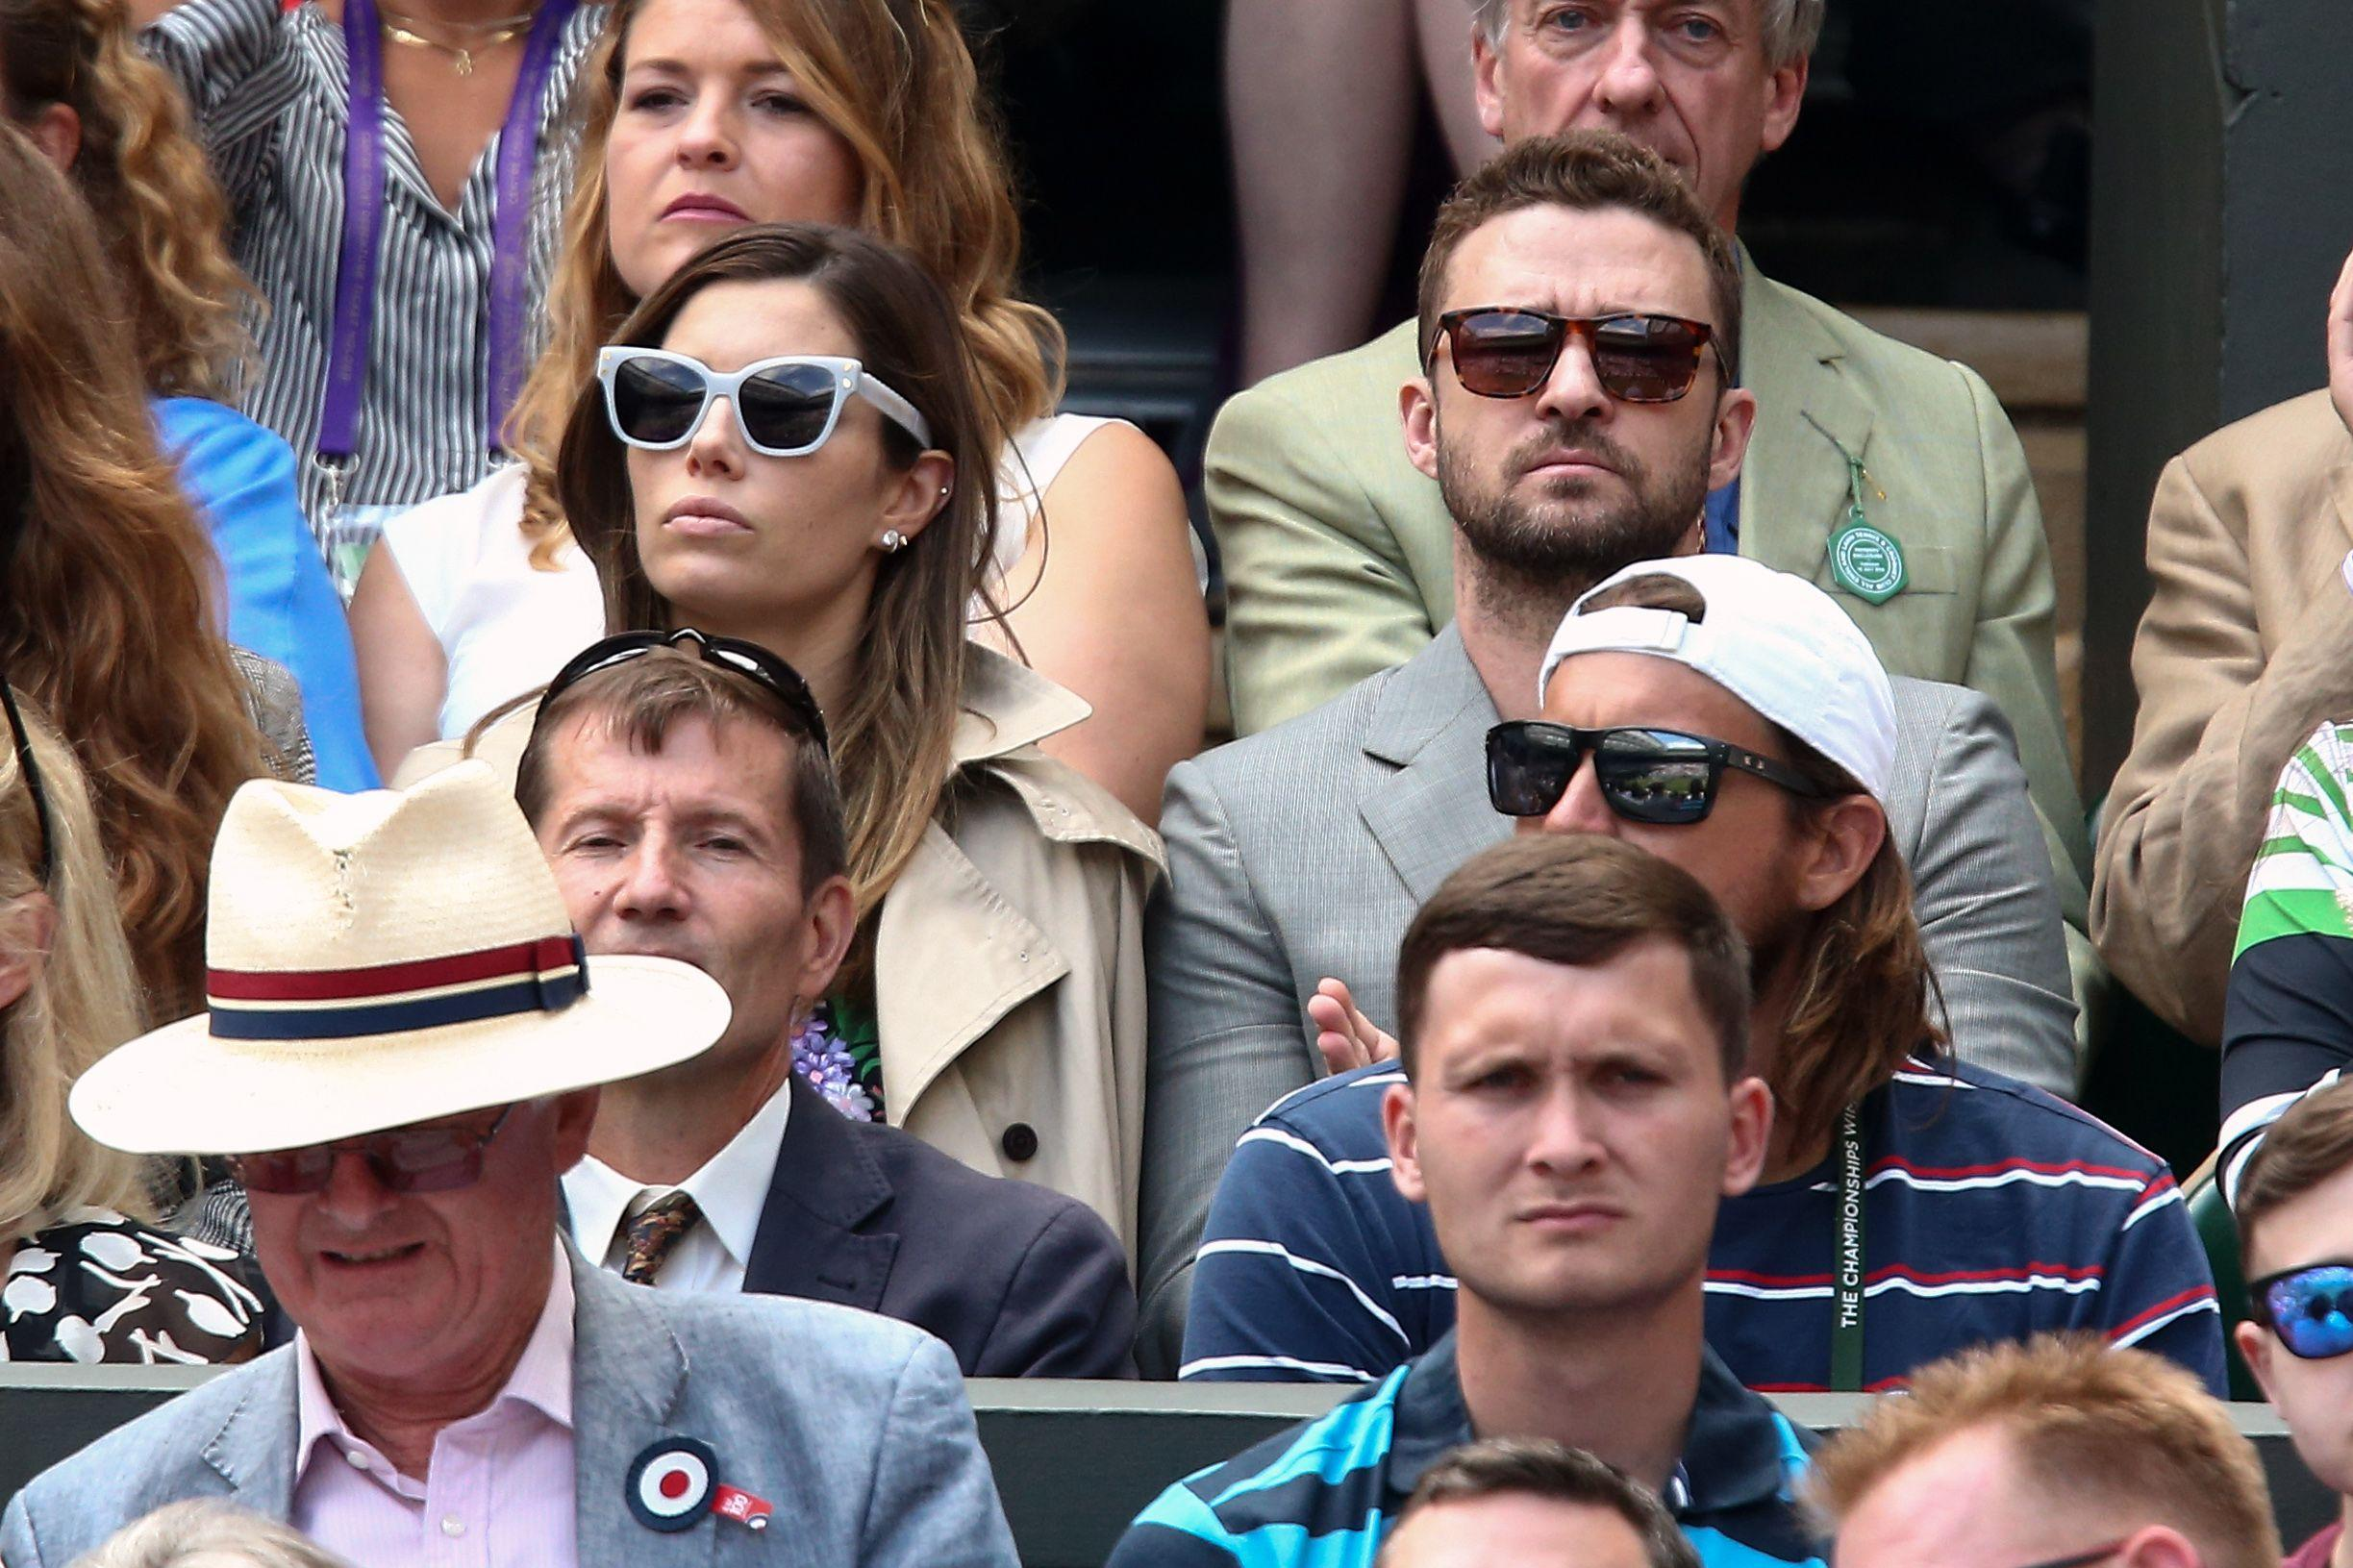 Justin Timberlake and his wife Jessica Biel also enjoyed the match